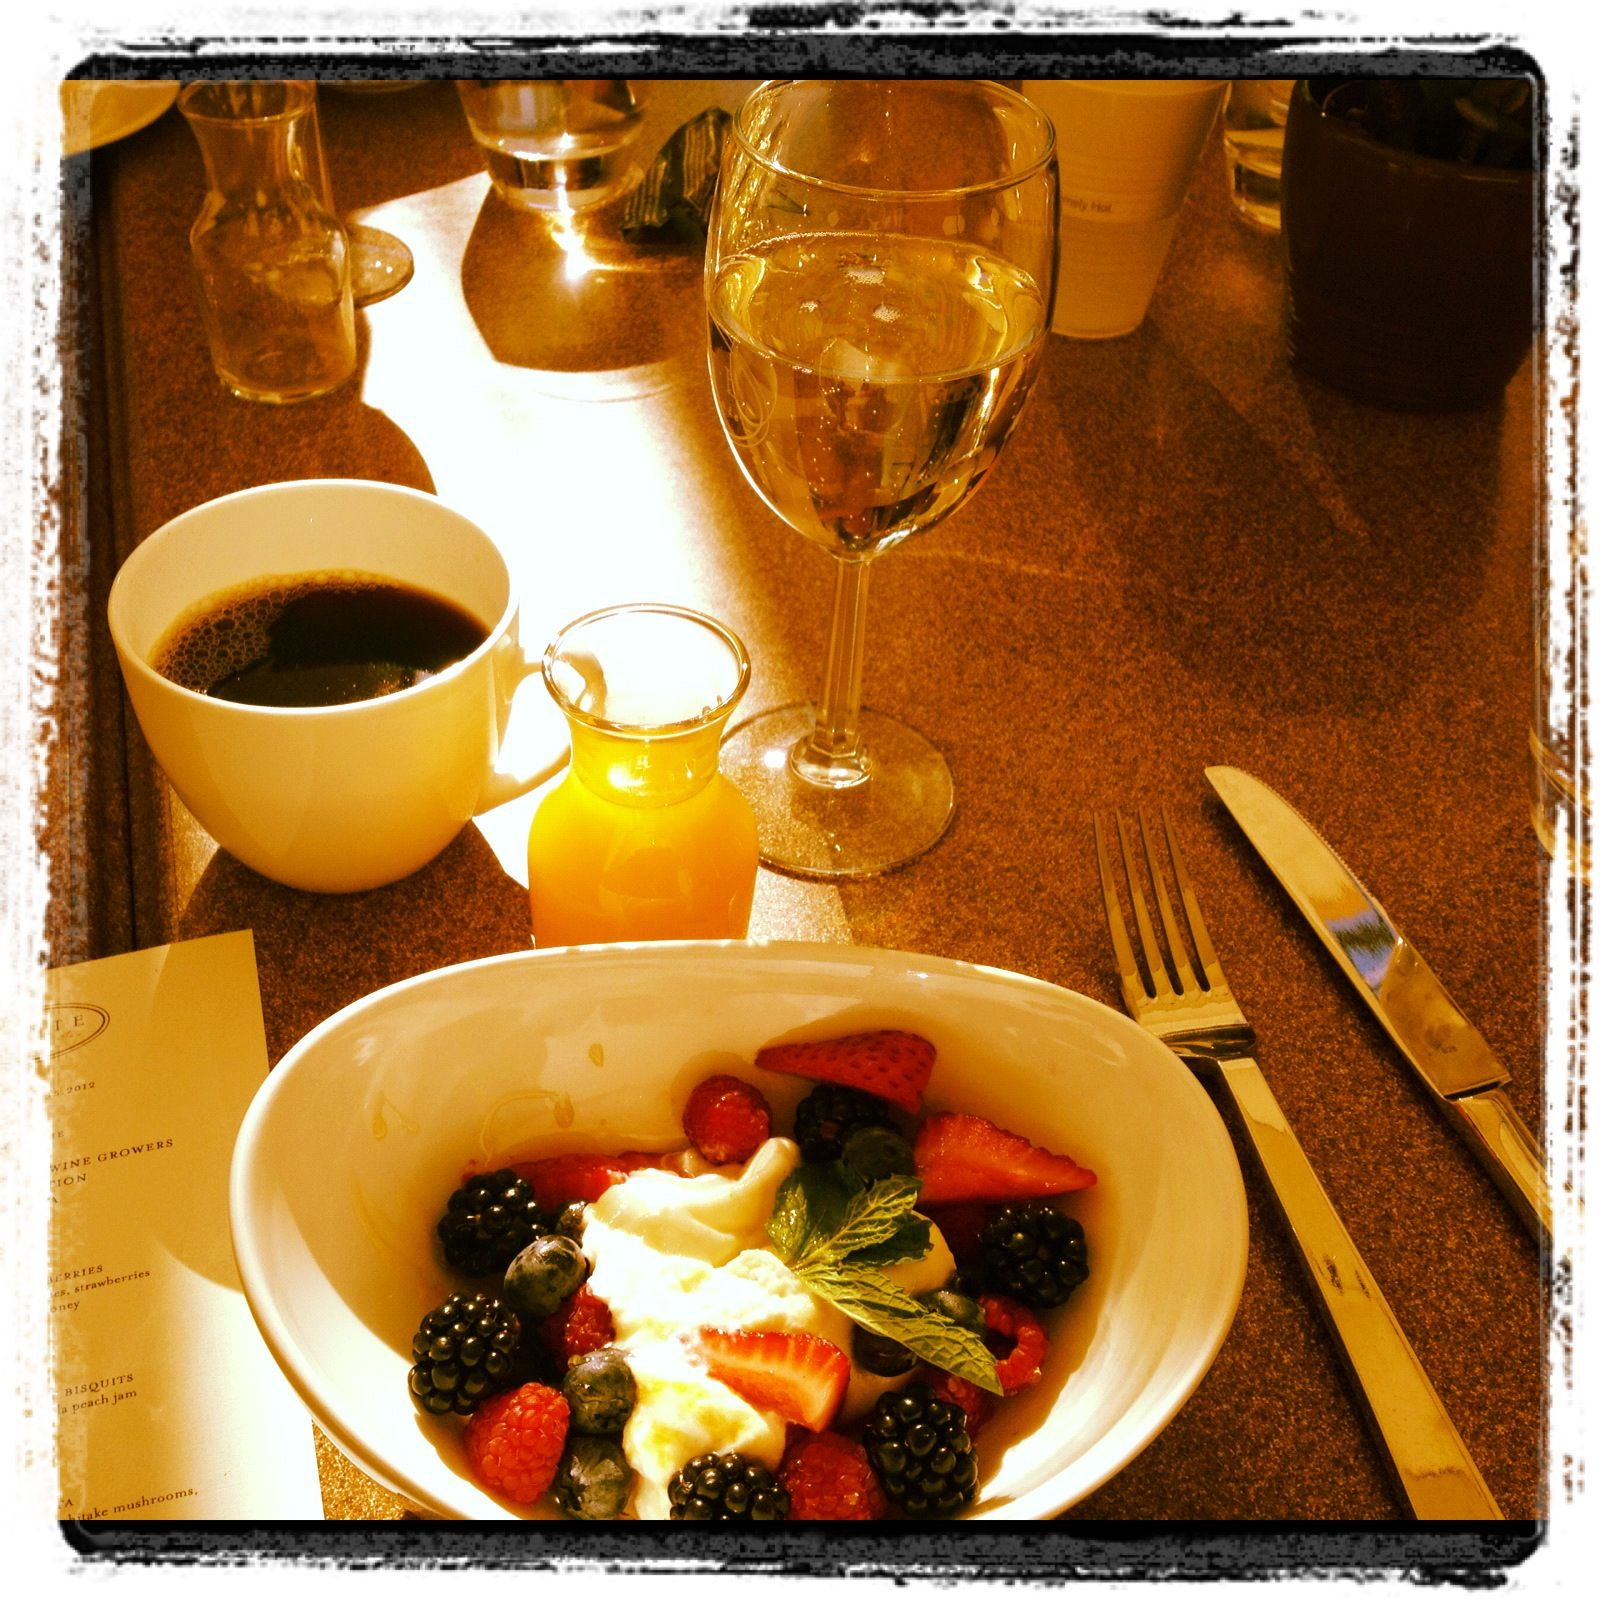 Delicious farm-to-table breakfast @PonteWinery #temeculawine